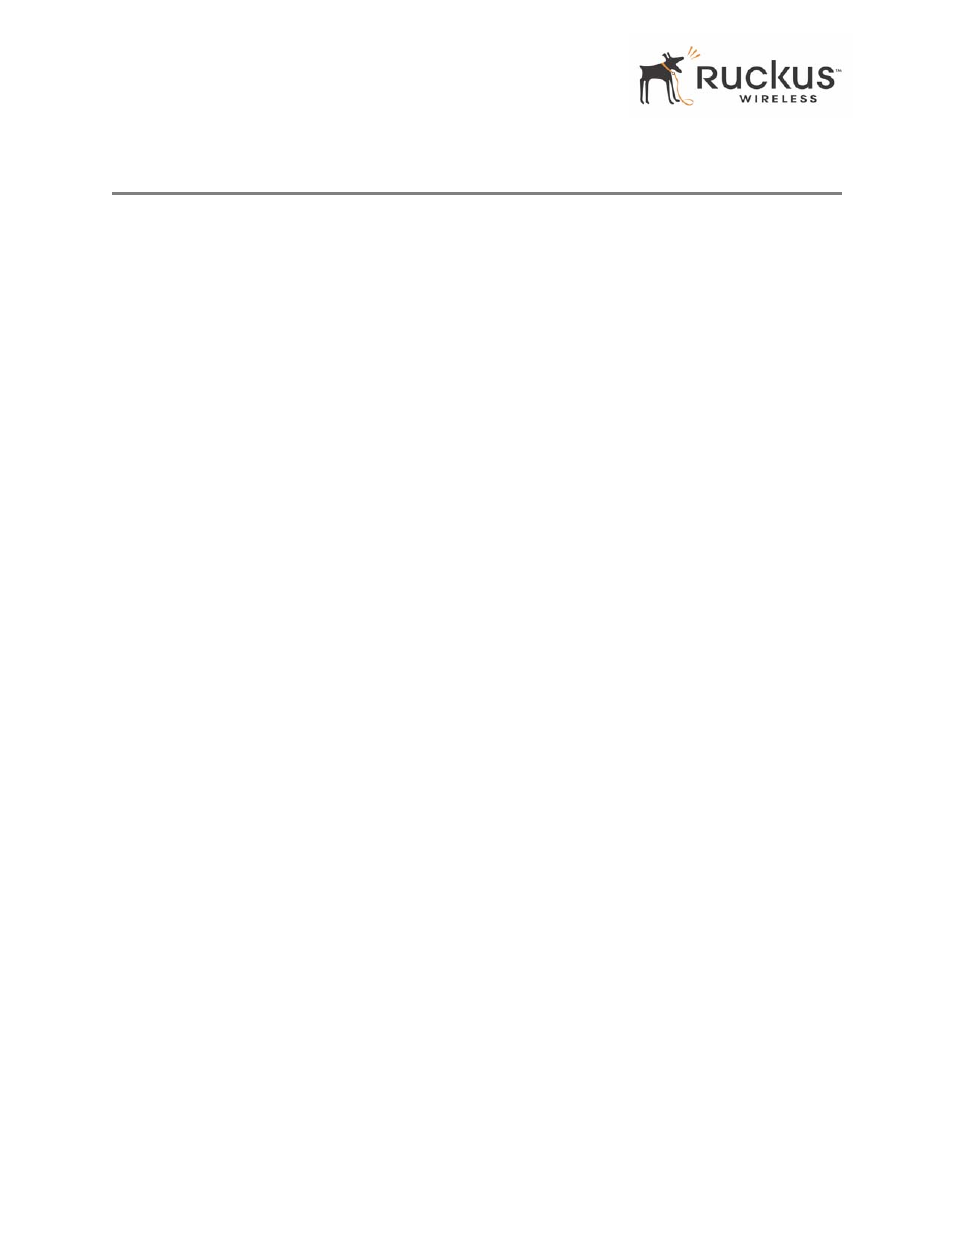 Configuring the mm2211 gateway, System configuration